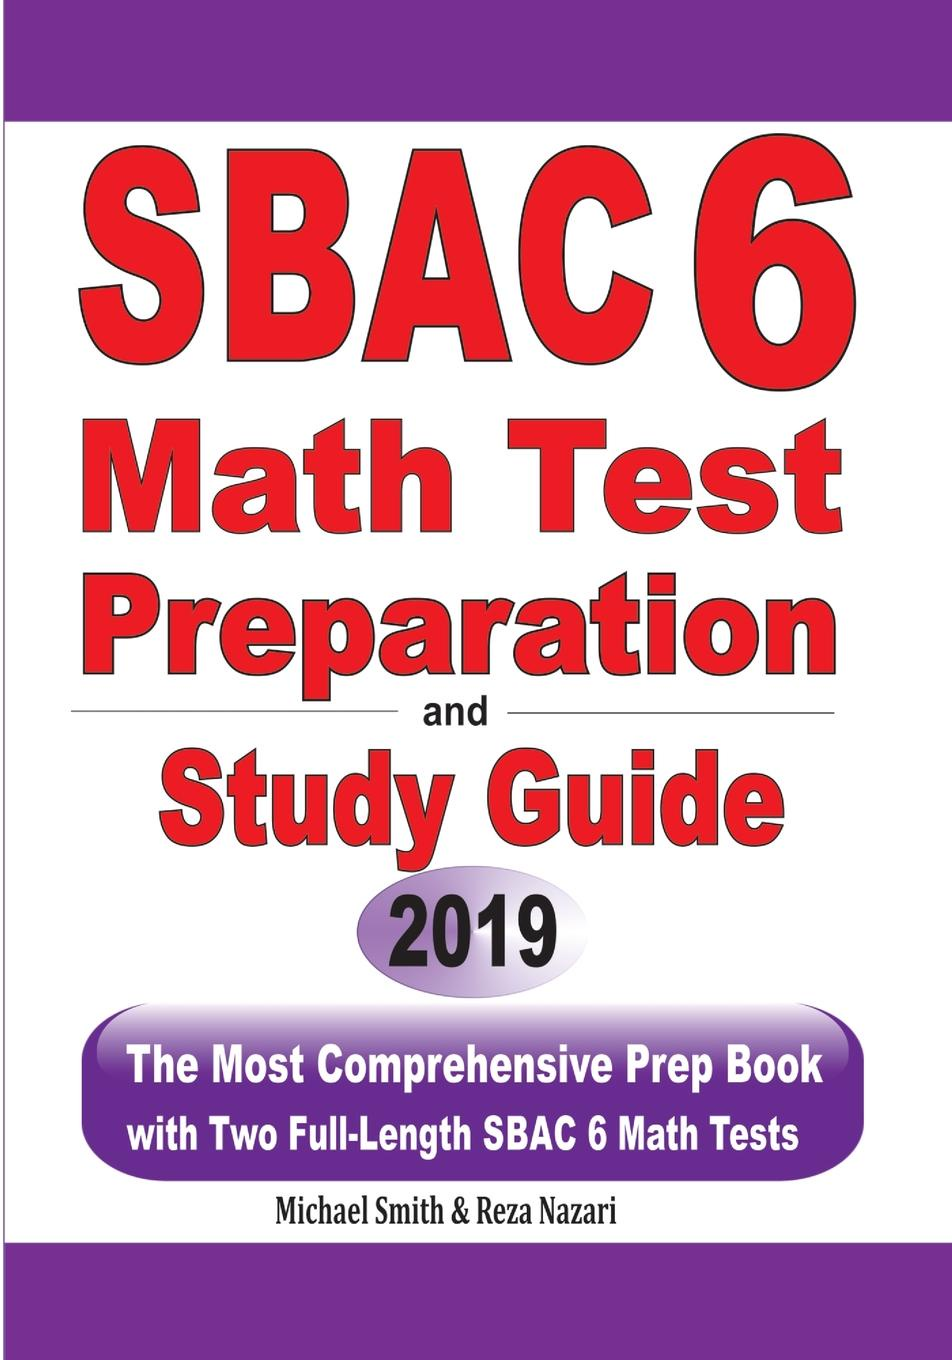 Michael Smith, Reza Nazari SBAC 6 Math Test Preparation and Study Guide. The Most Comprehensive Prep Book with Two Full-Length SBAC Math Tests